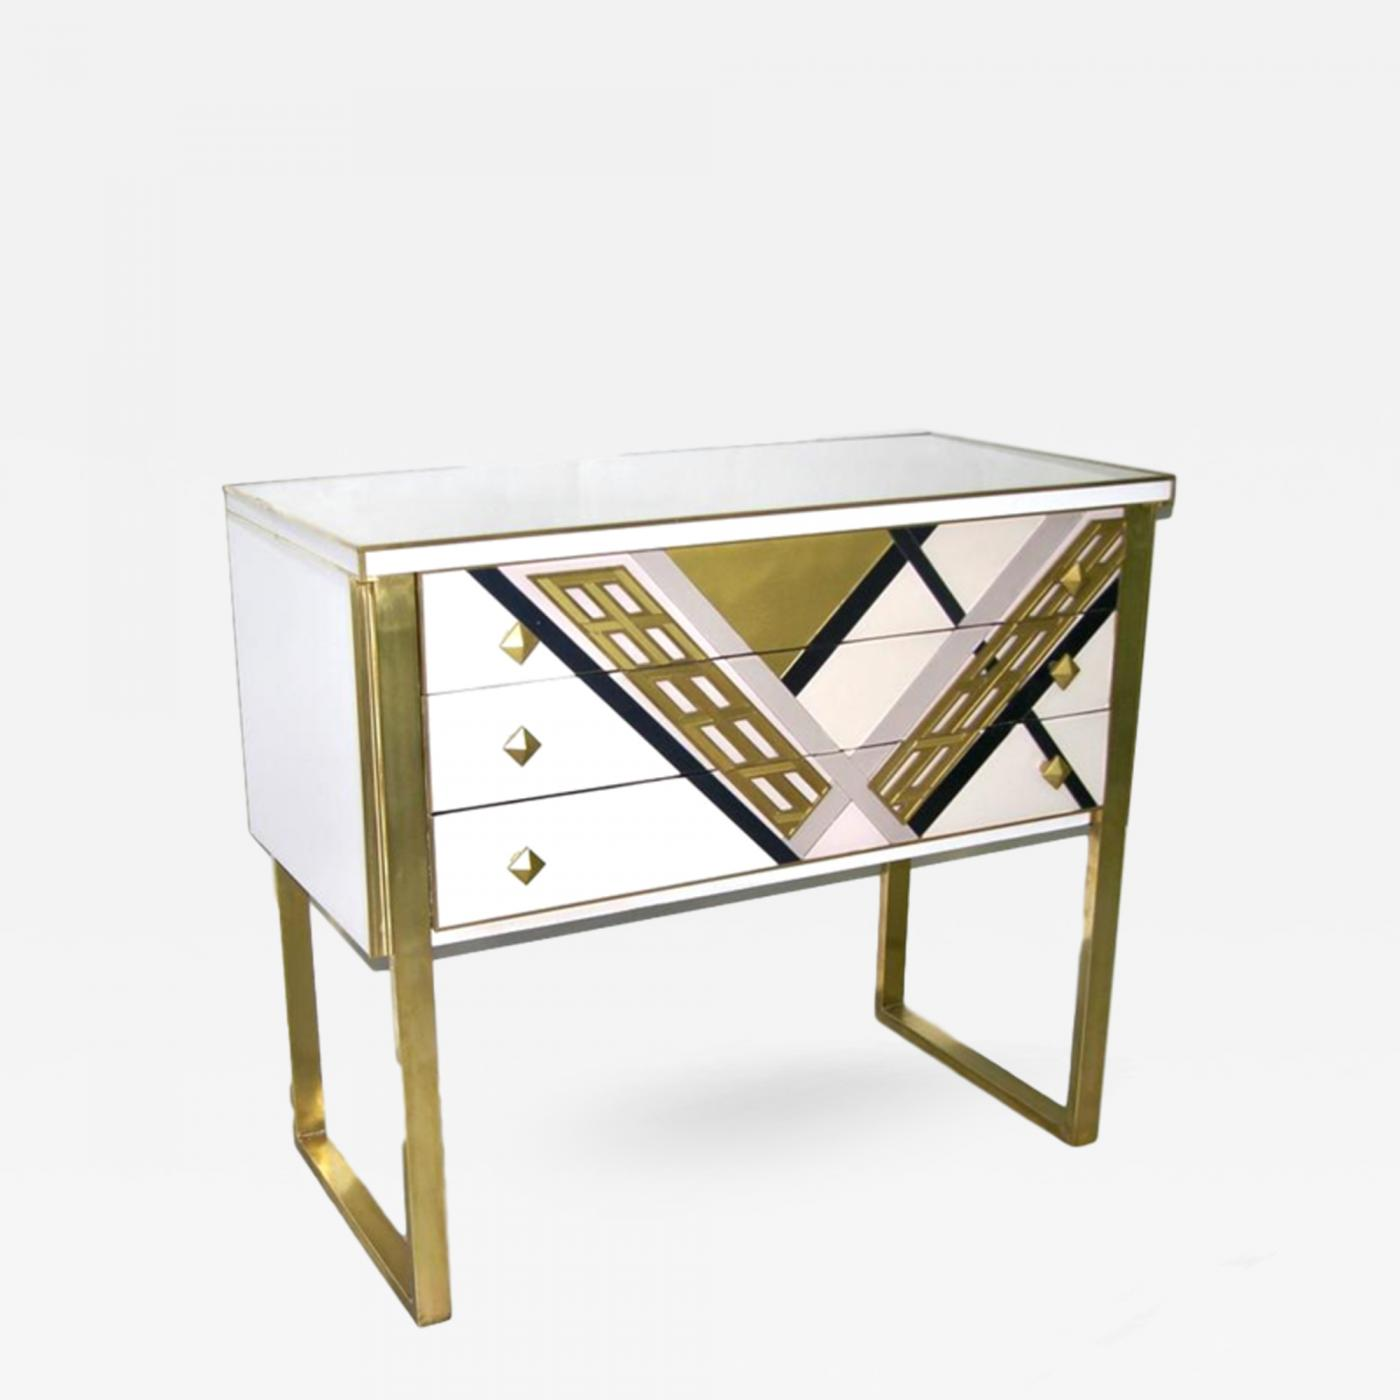 Fabulous 1990S Italian Unique White Black And Gold Chest Or Sideboard On Brass Legs Creativecarmelina Interior Chair Design Creativecarmelinacom